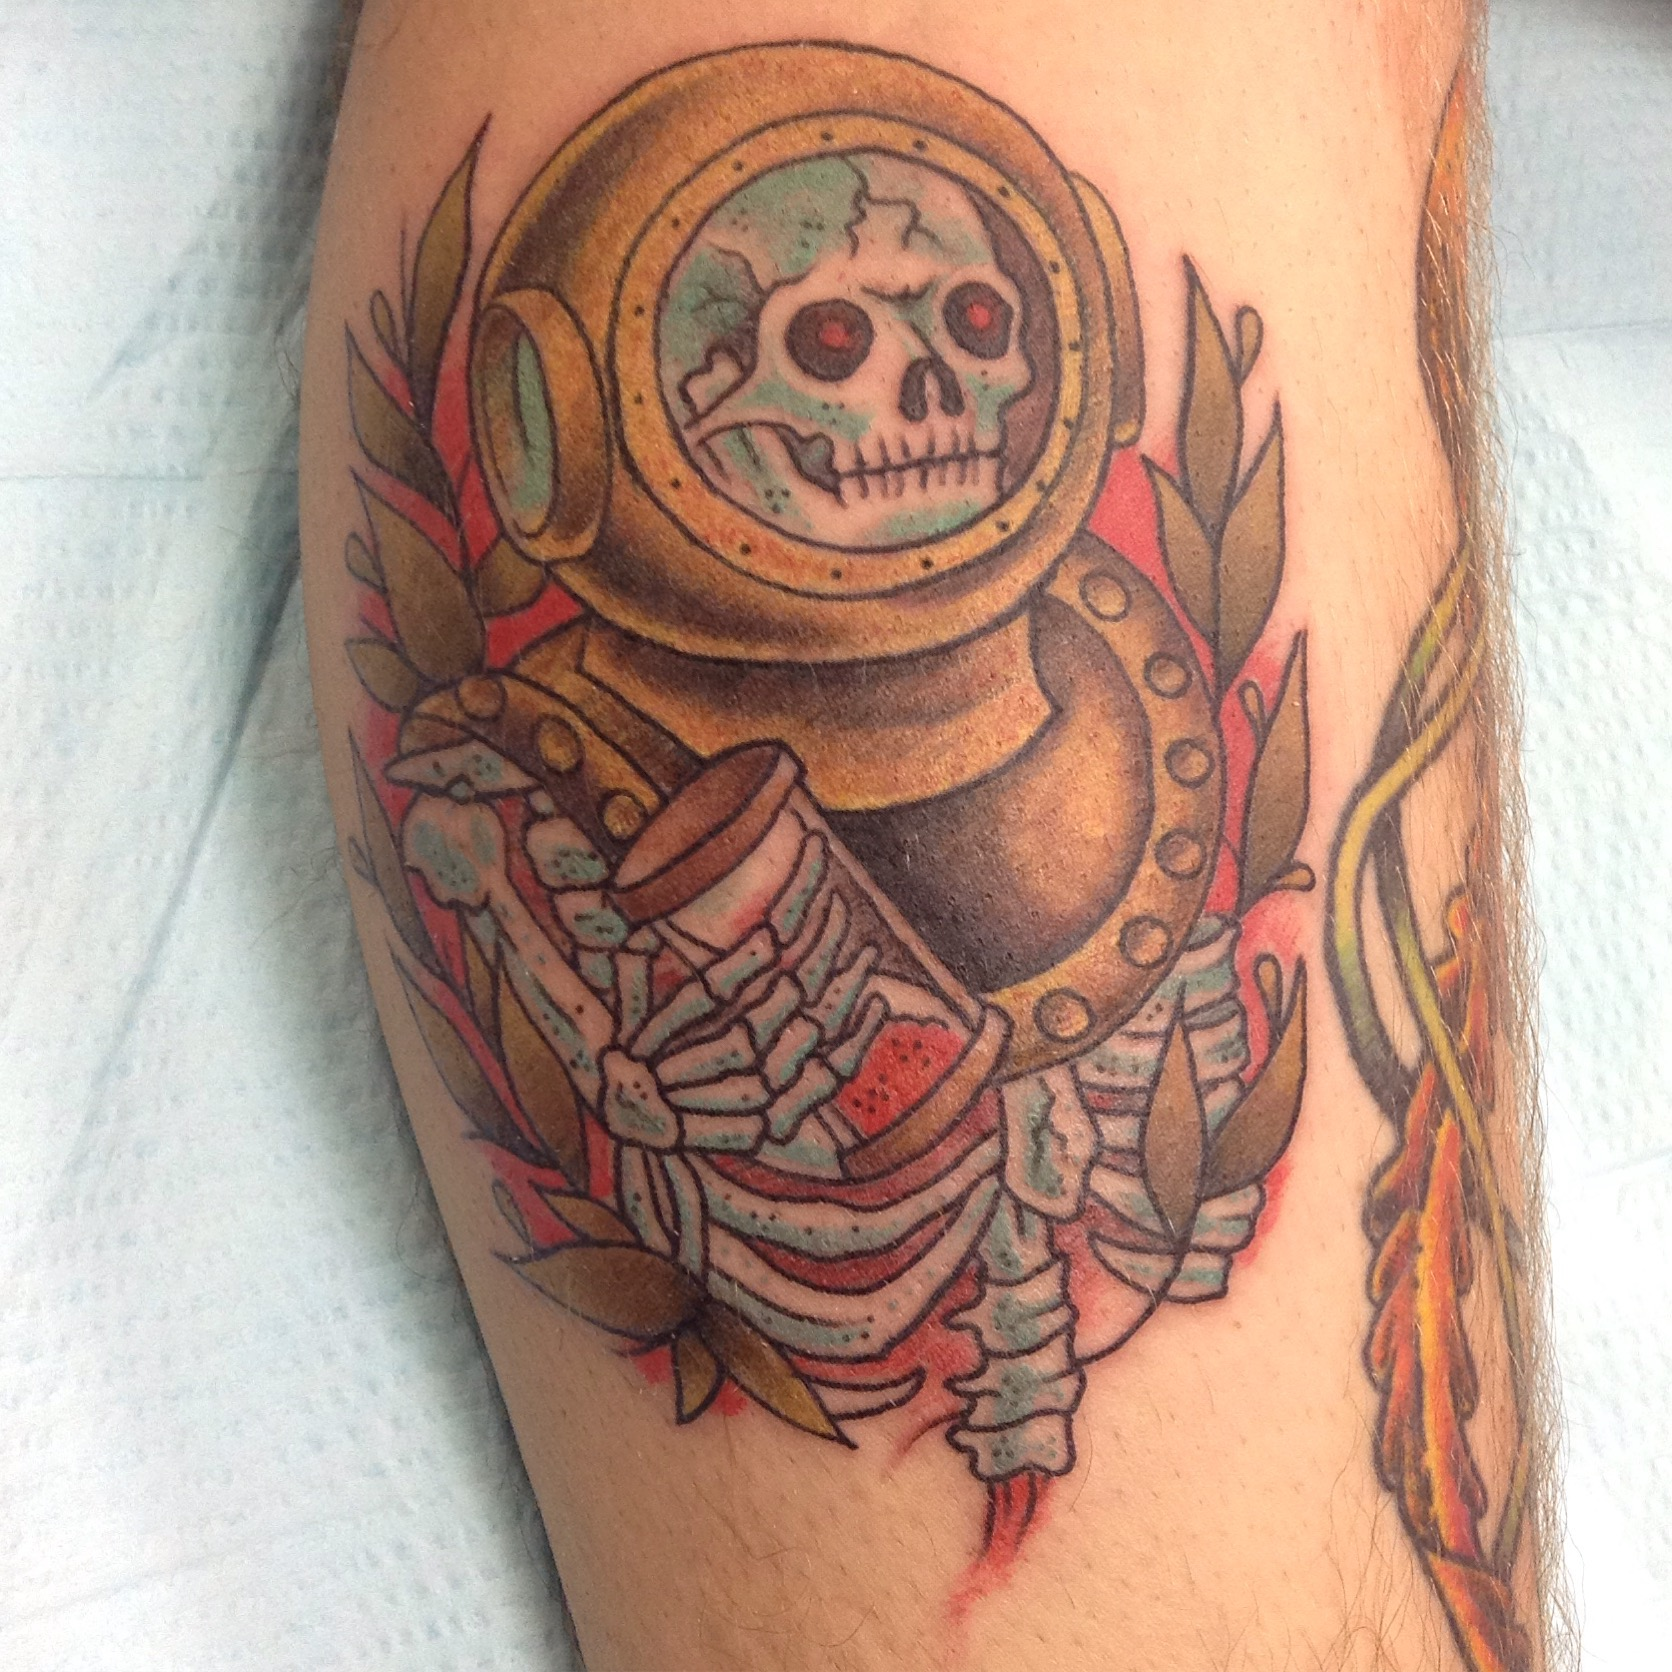 Tattoo by James Delzel